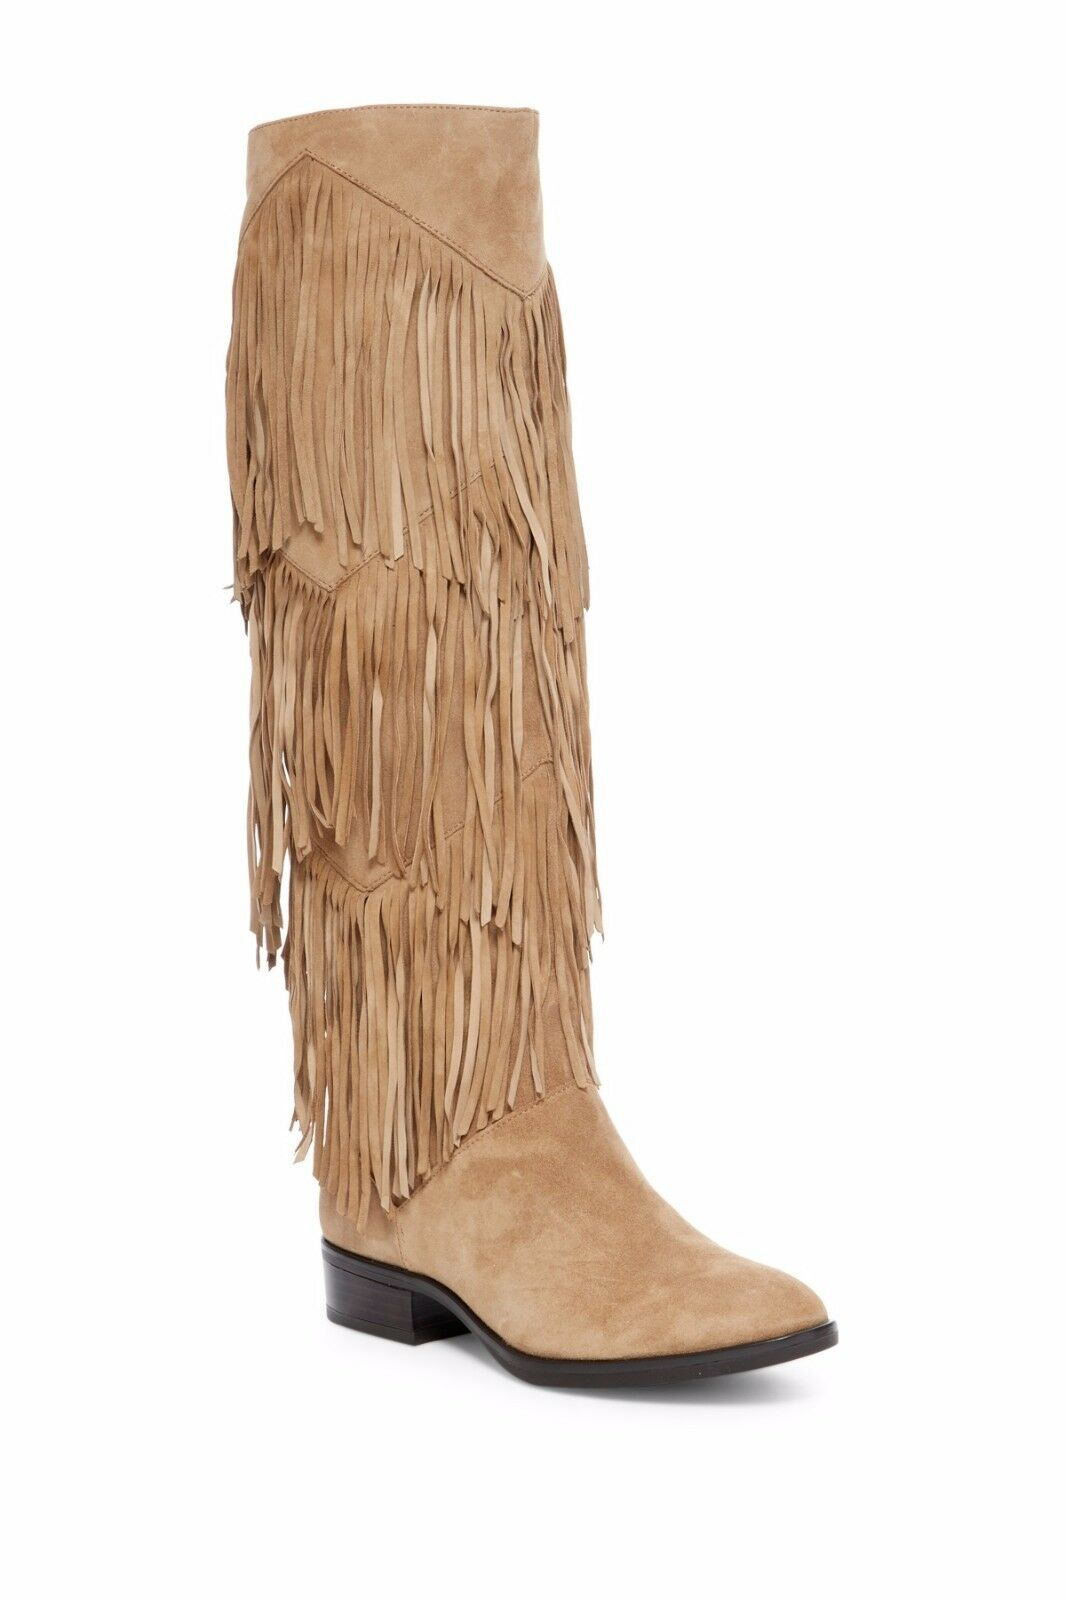 Sam Edelman Riding Boots Pendra Tall Fringe Leather Suede Ta